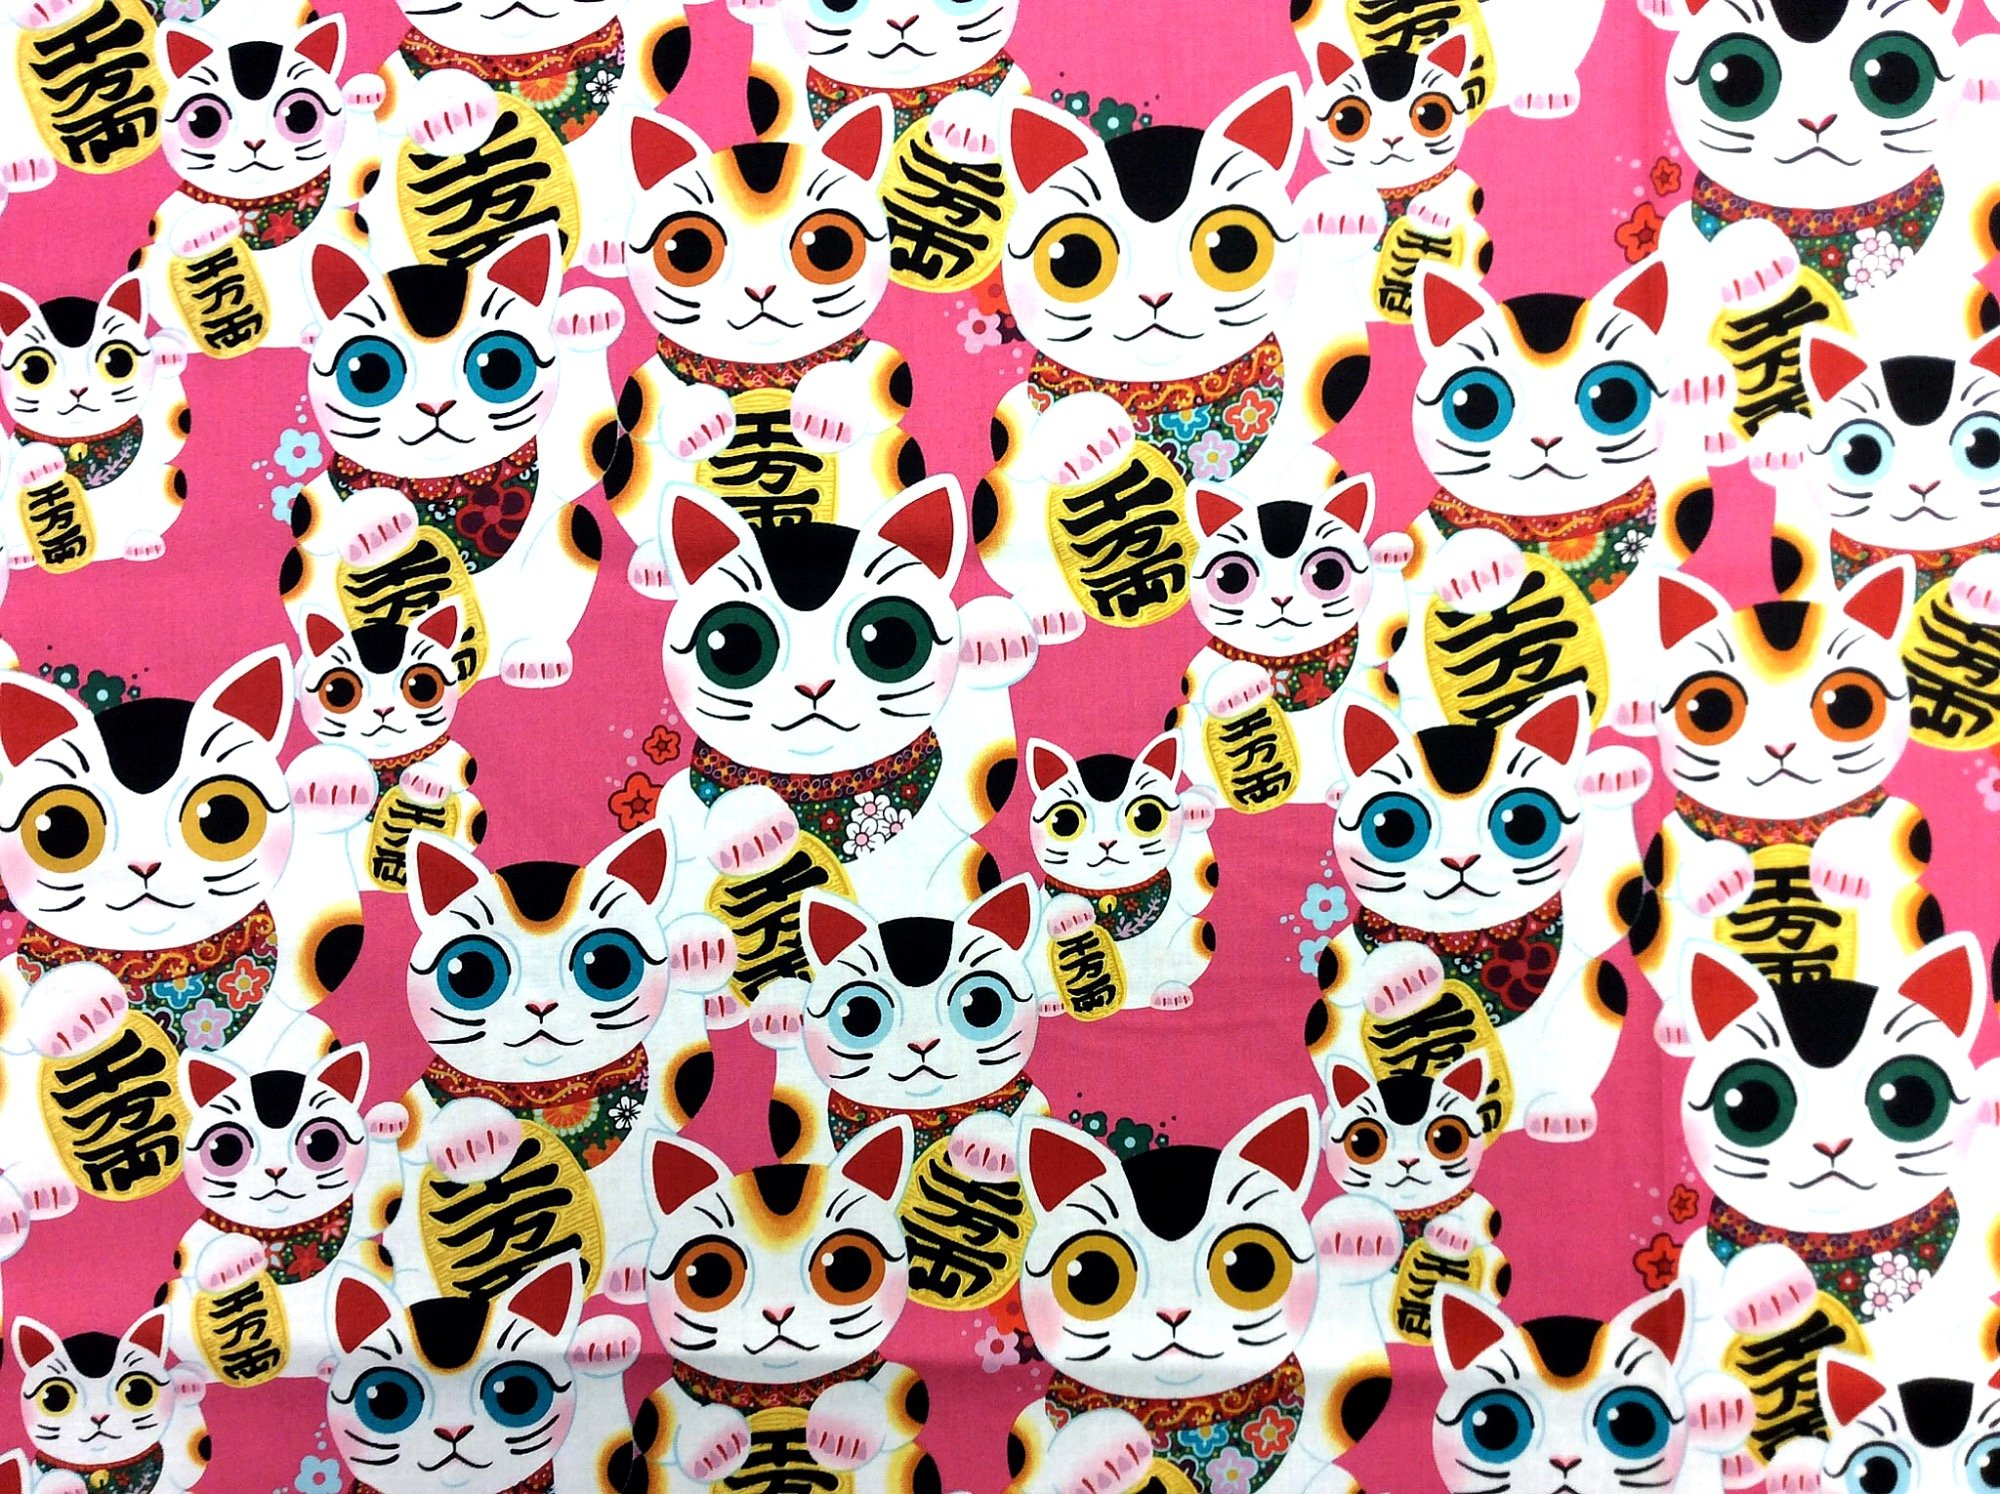 Asian Fuku Kitty Good Luck Cat Japanese Style Kitty Cat  Kittens Cotton Quilt Fabric AH271